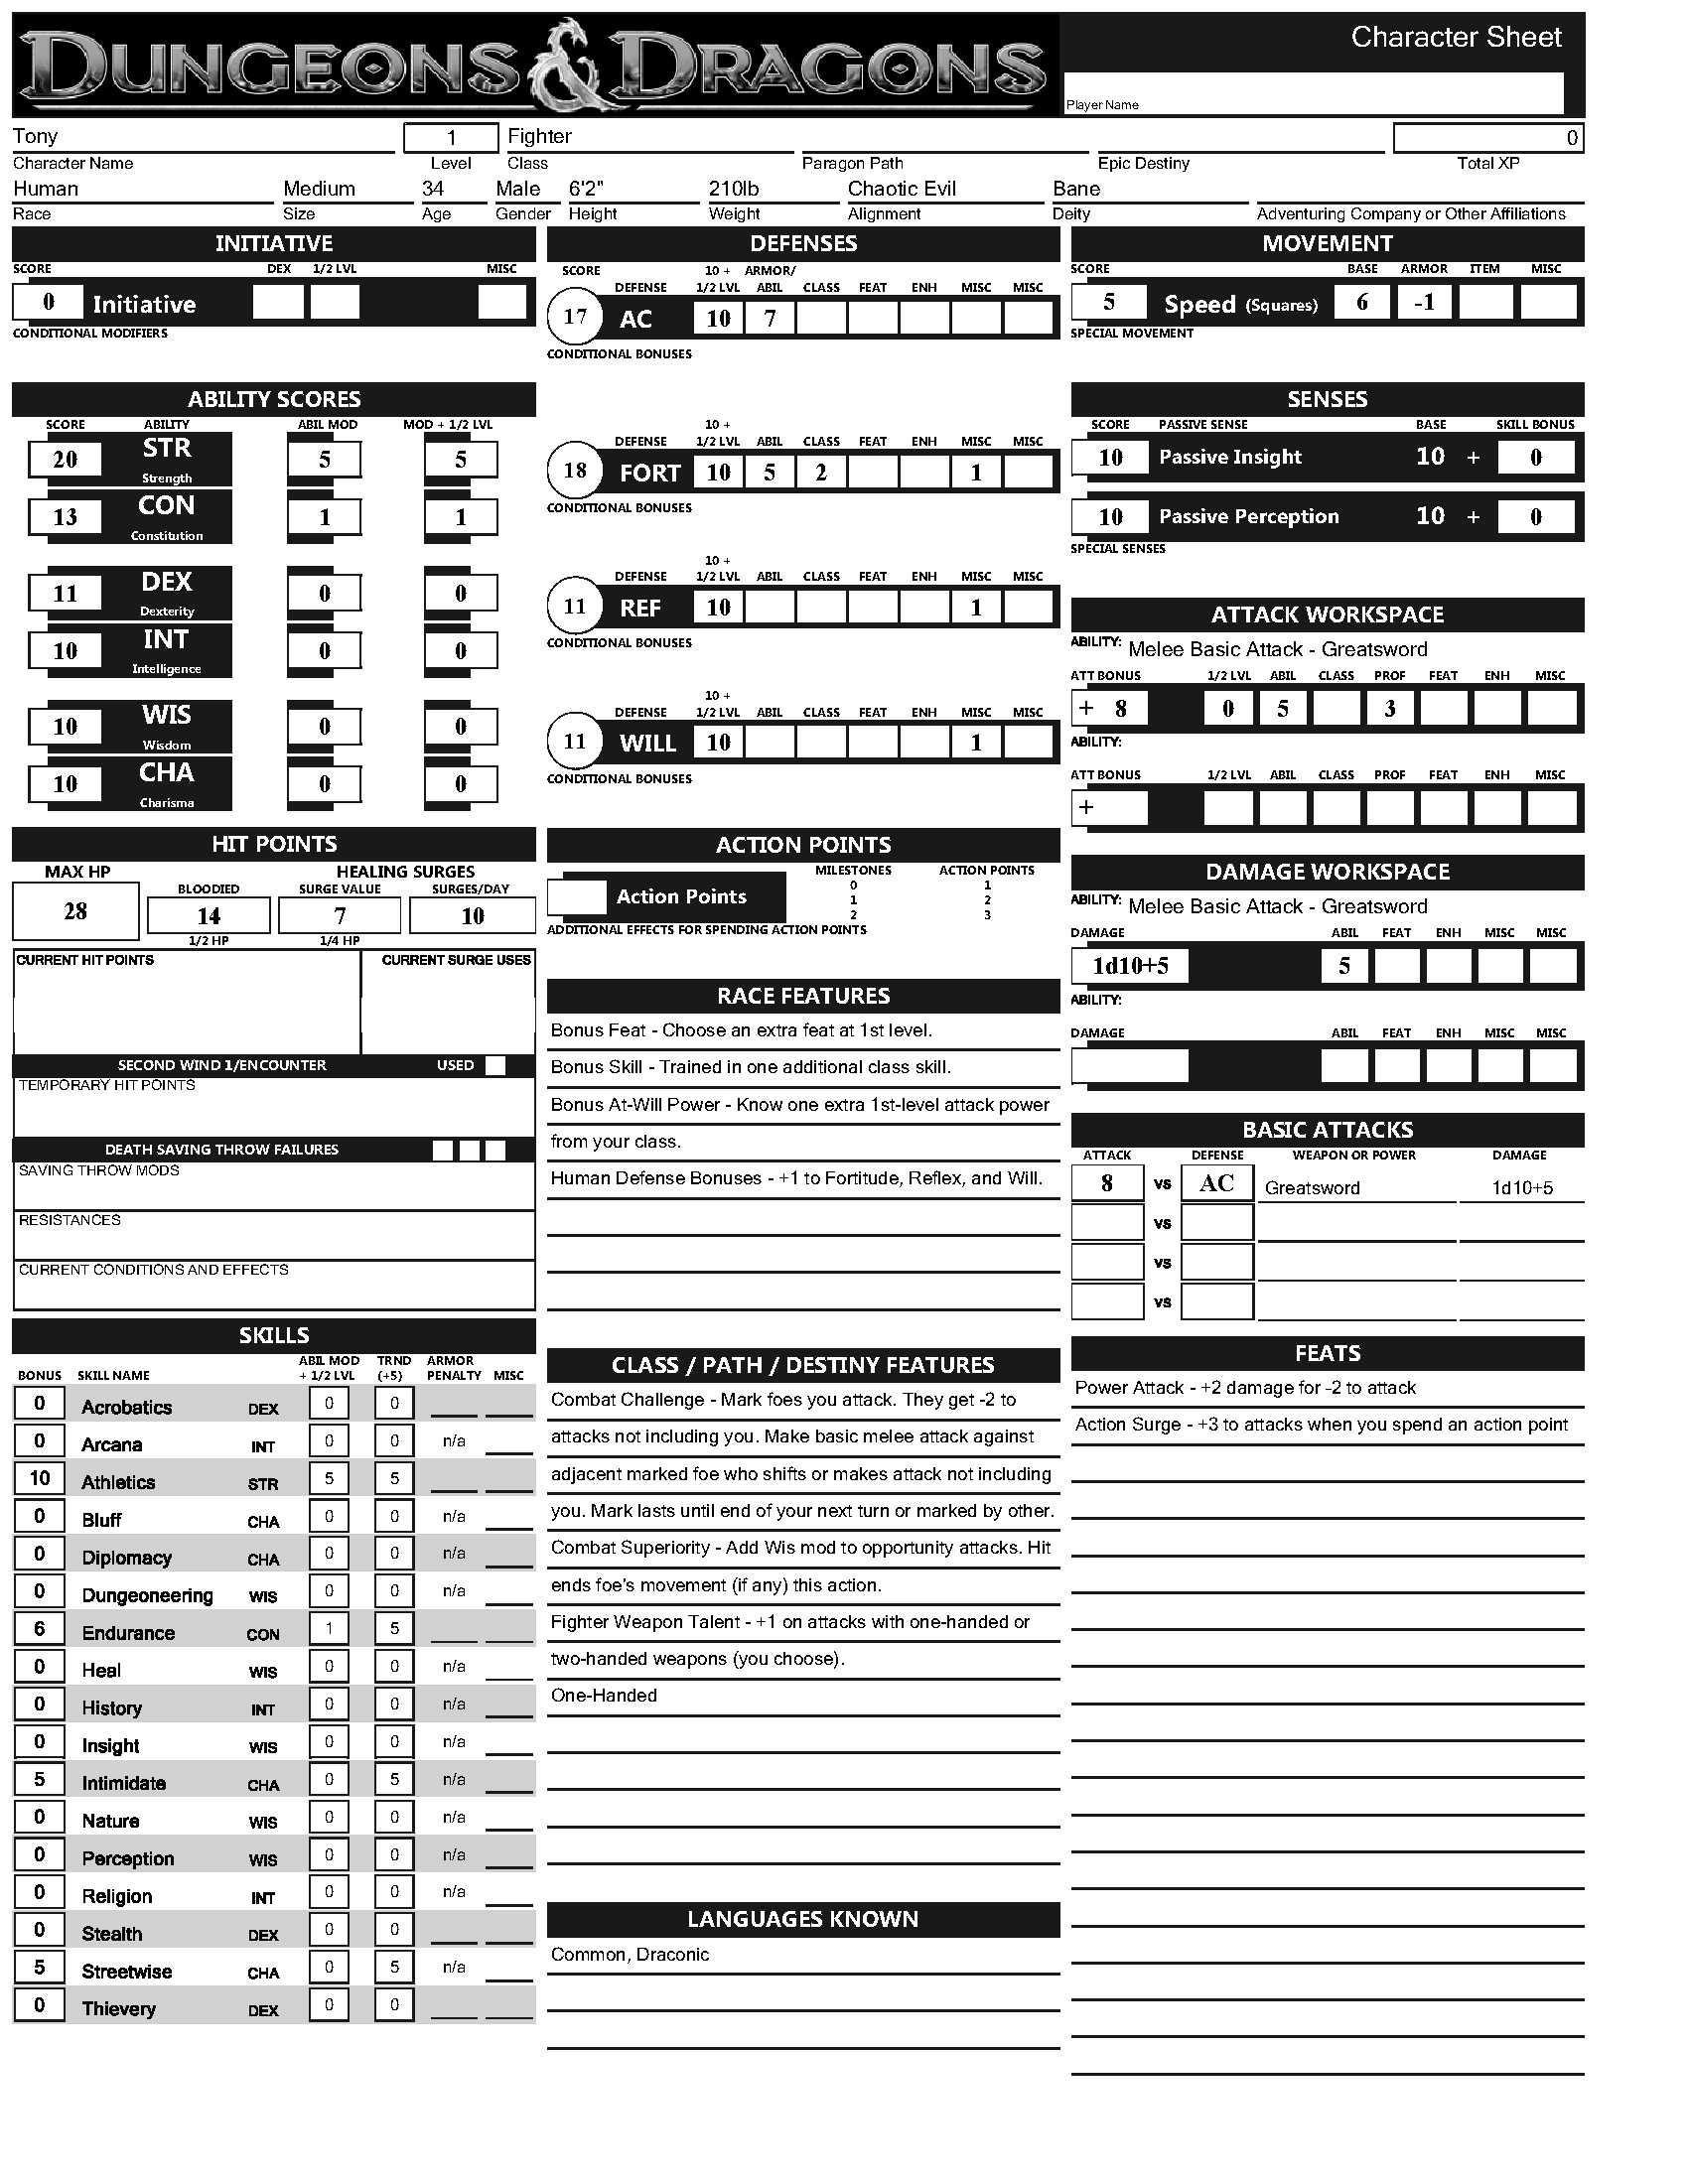 graphic relating to 3.5e Character Sheet Printable identify Dungeons and dragons 3.5 persona sheet Index of / DND